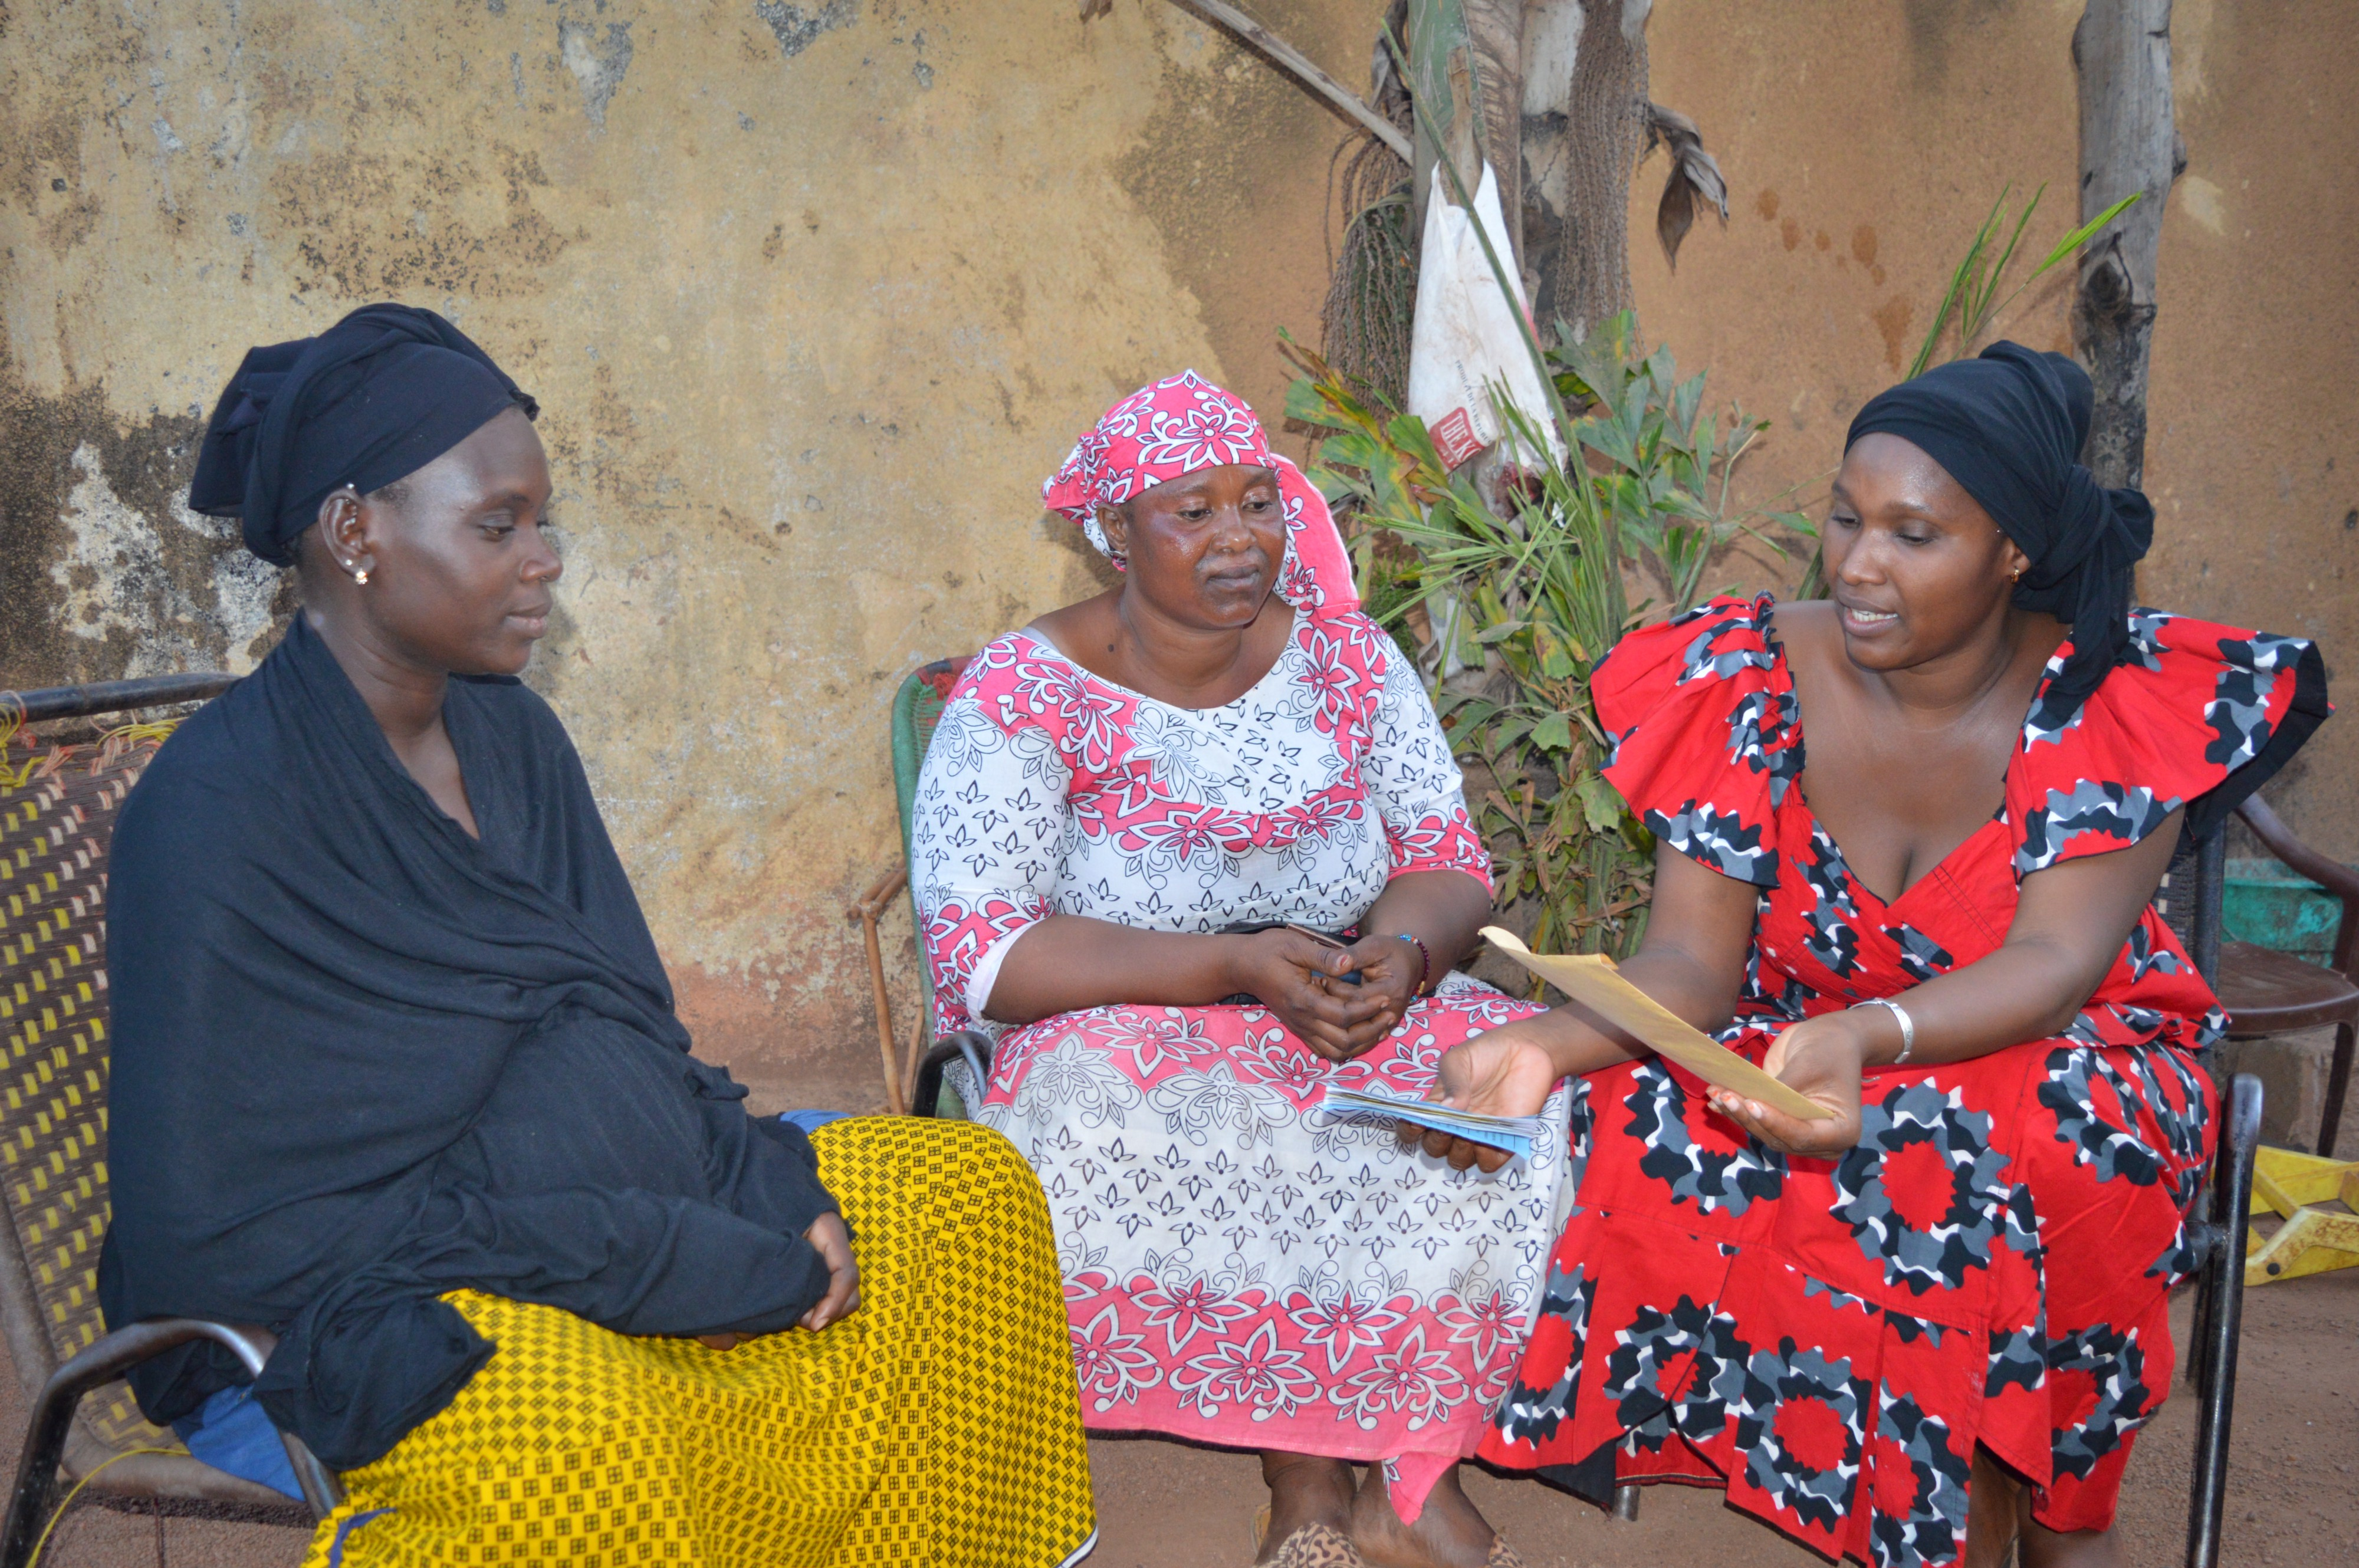 In her neighborhood, Mama Diancoumba discusses and advises other women on the health issues.